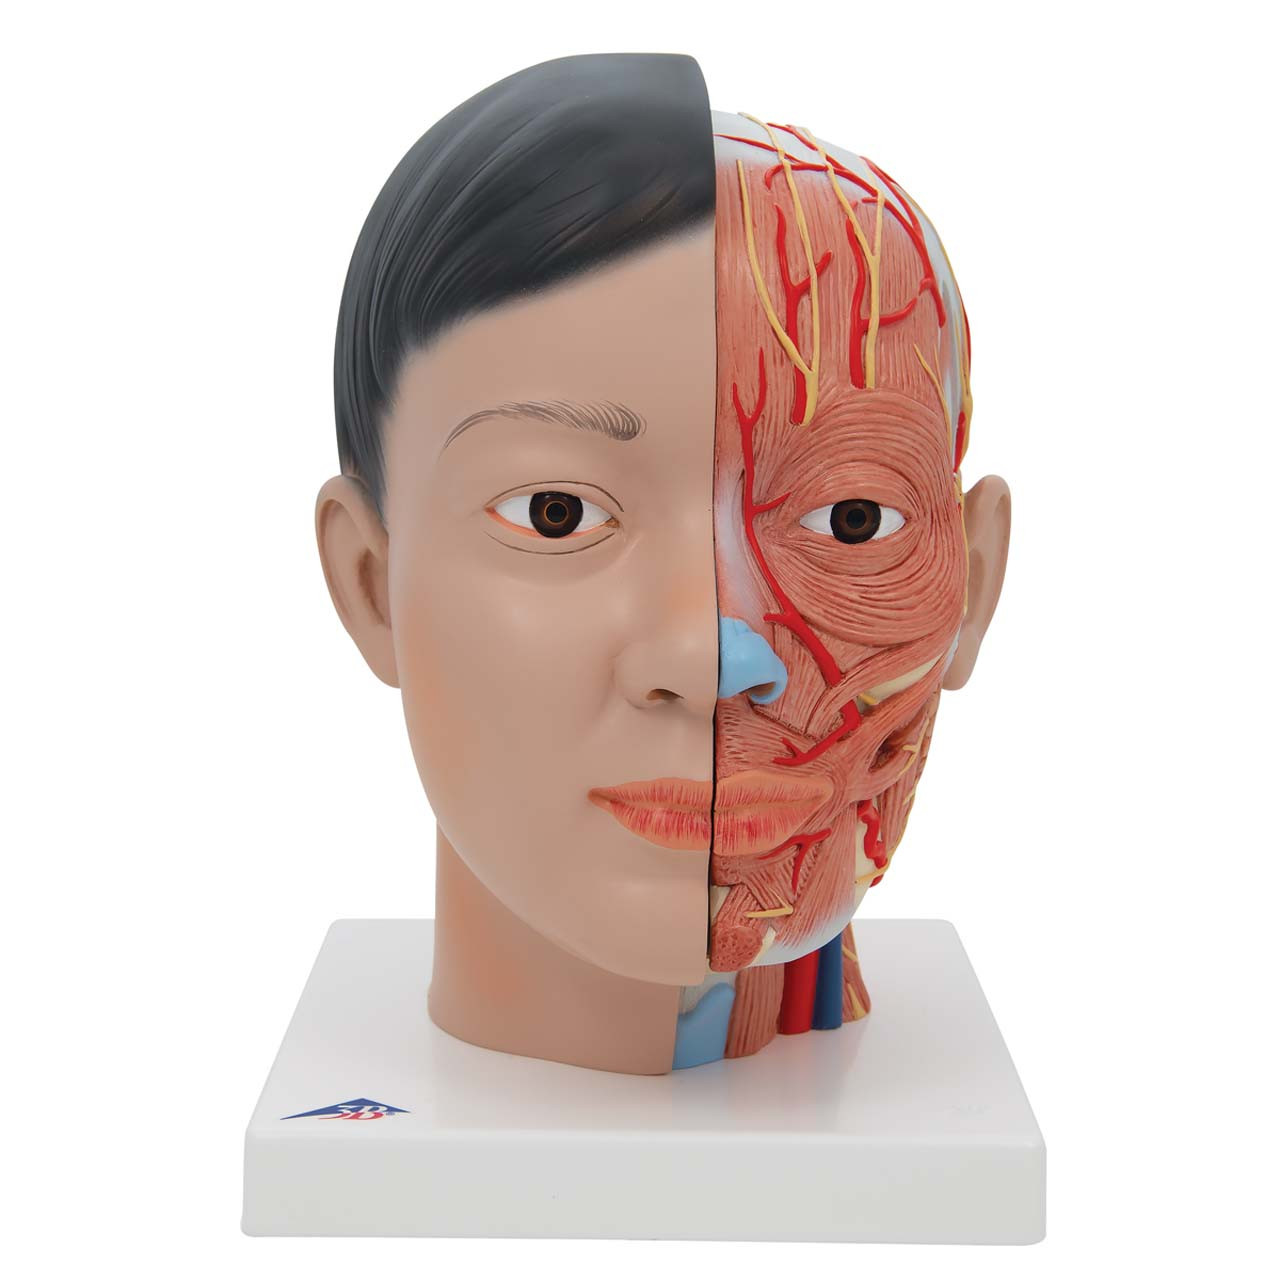 1000215 - Asian Deluxe Head with Neck, 4 part